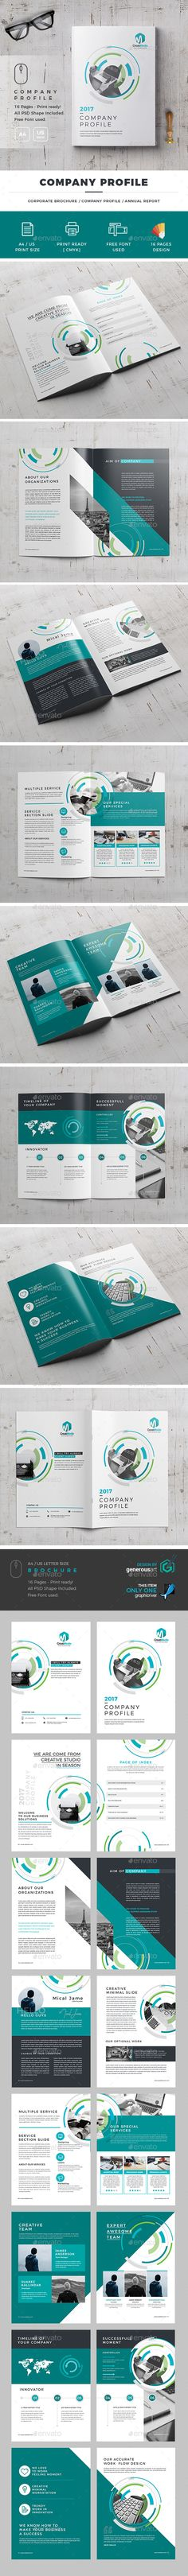 Brochure — Photoshop PSD #creative #creative brochure • Download ➝ https://graphicriver.net/item/brochure/19754679?ref=pxcr